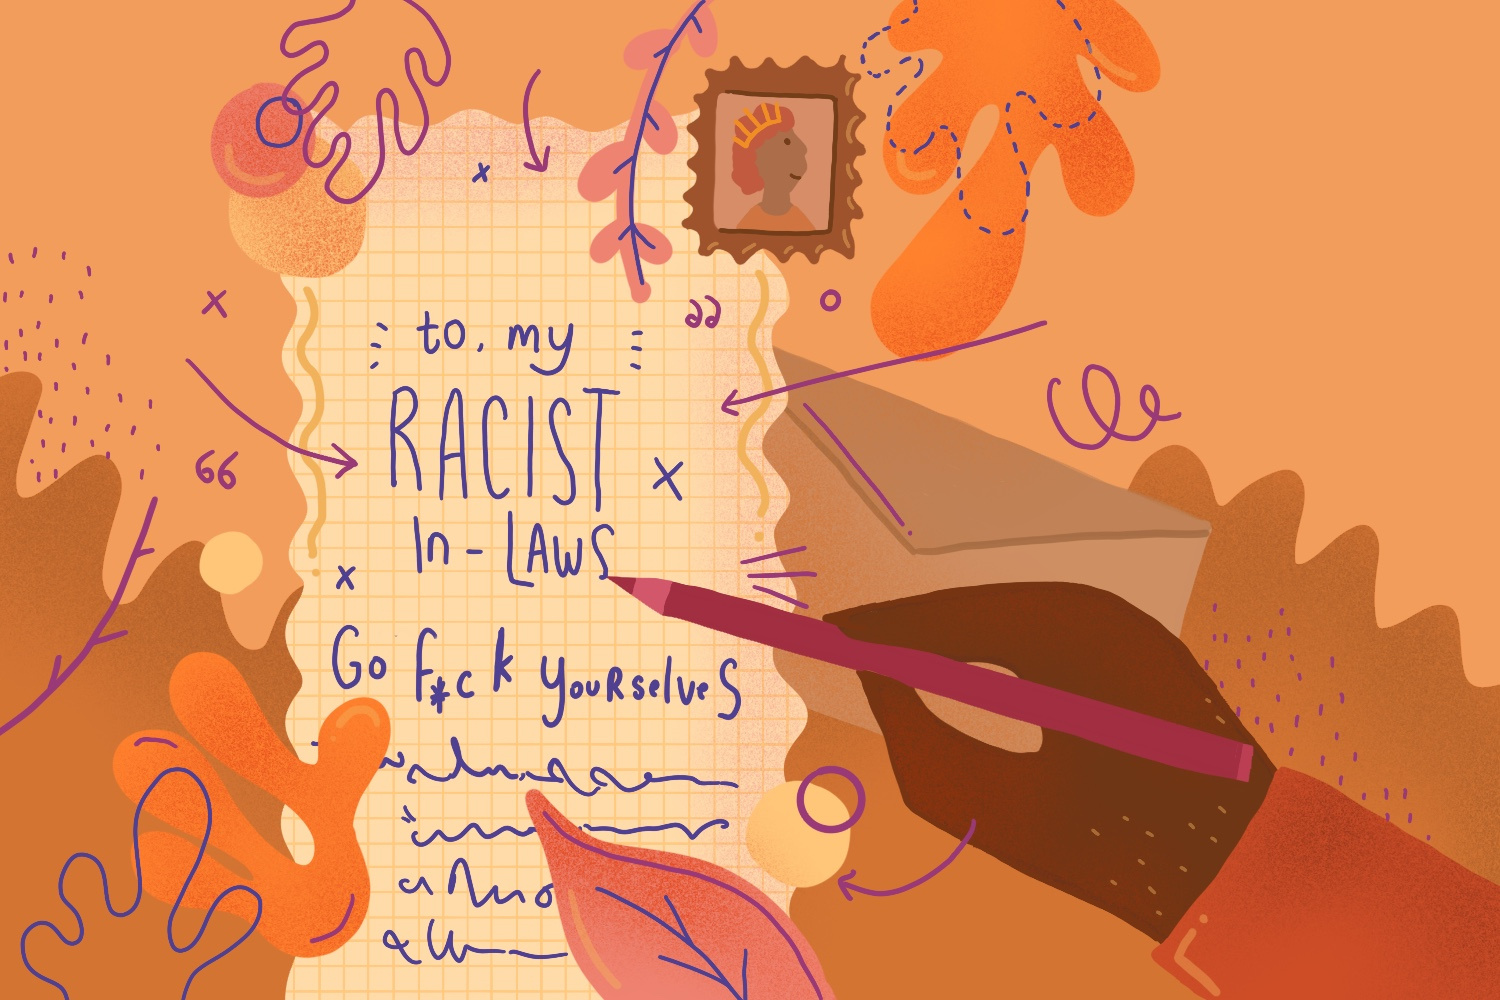 A letter to my racist in-laws